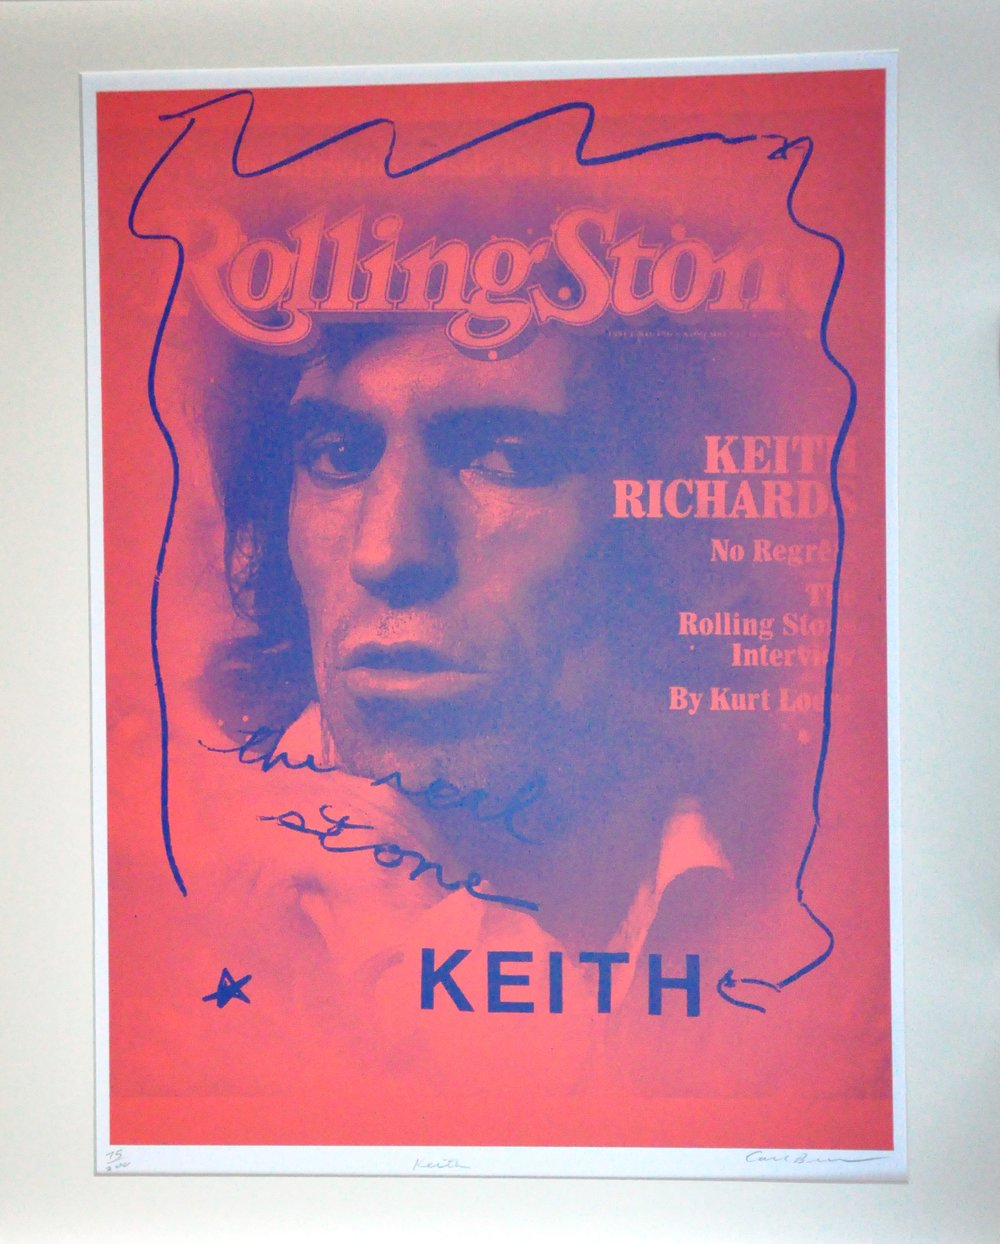 "Keith,  2000, Carl Beam, serigraph on paper, edition 75/200, 30"" x 22"", 2006.05.08, gift of the Milton Winberg Foundation"